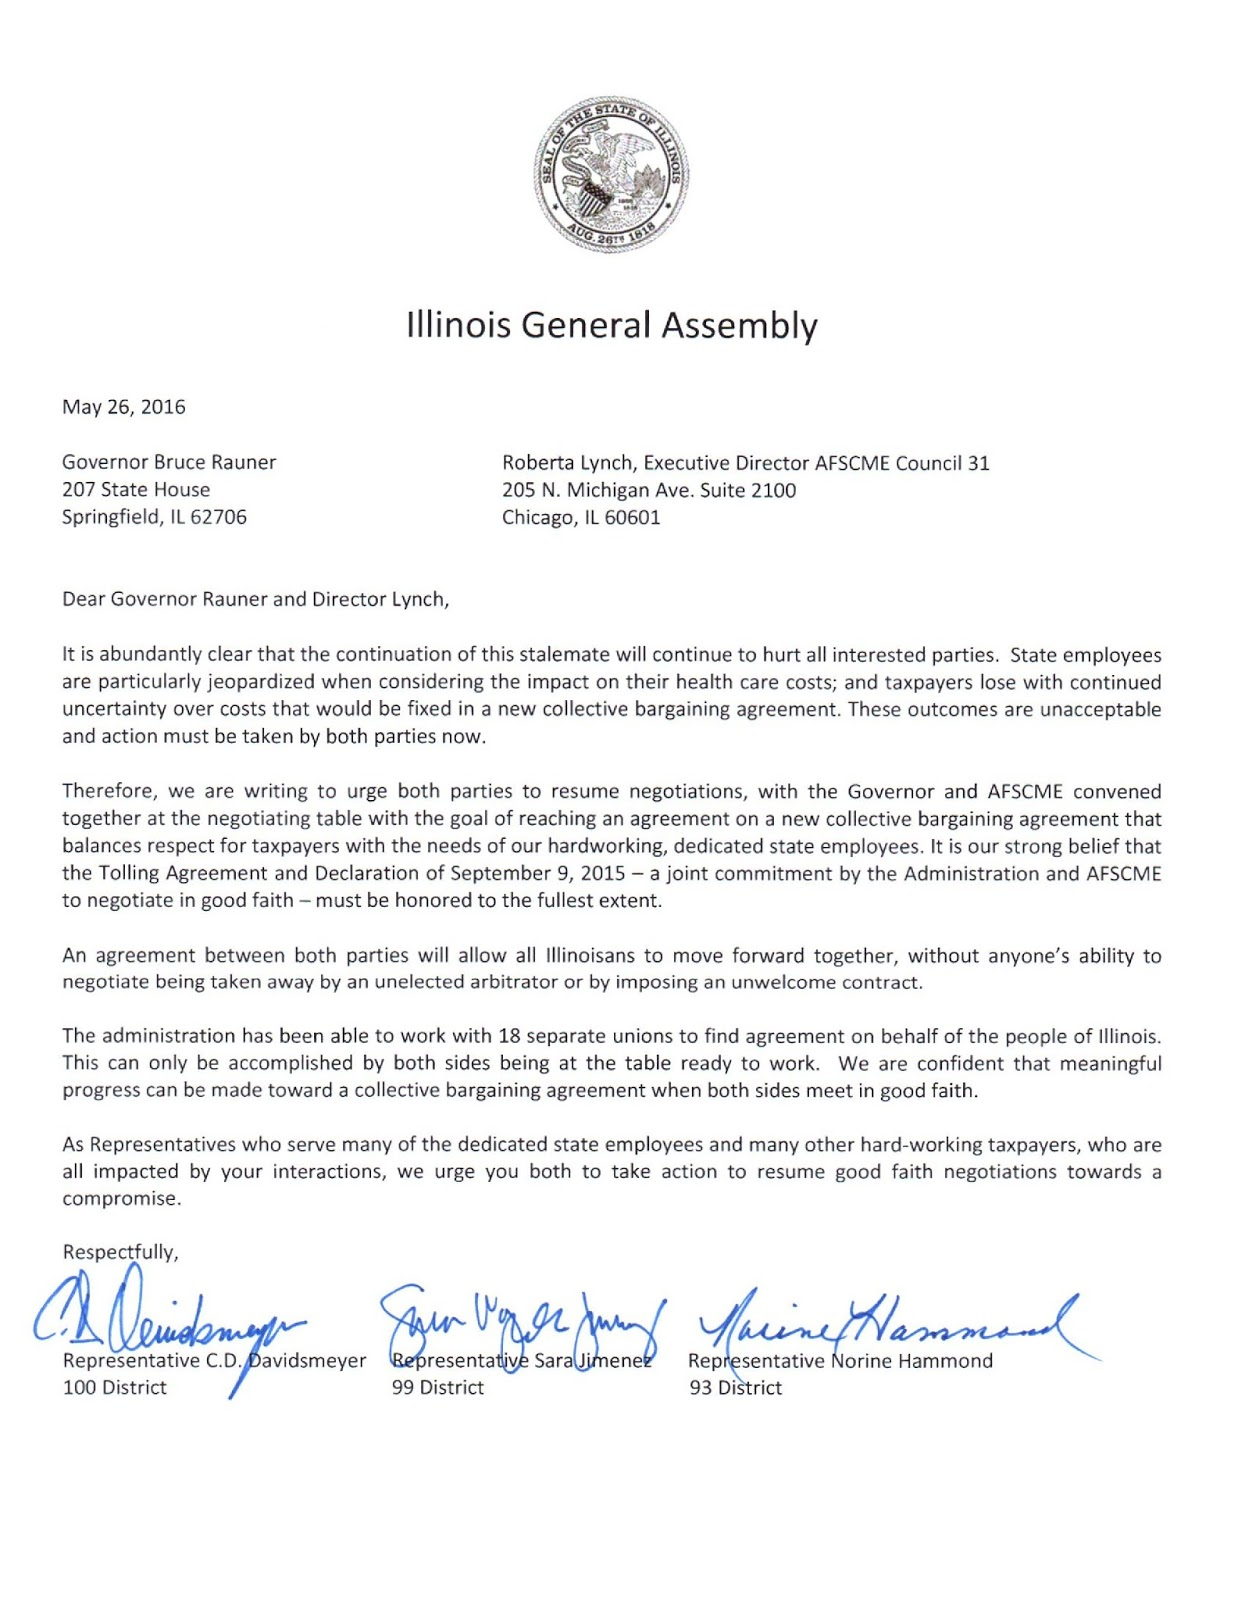 Bourne Sends Letter To Governor Bruce Rauner And AFSCME Requesting Both  Sides To Return To The Table For Thoughtful, Good Faith Negotiations.  Good Faith Letter